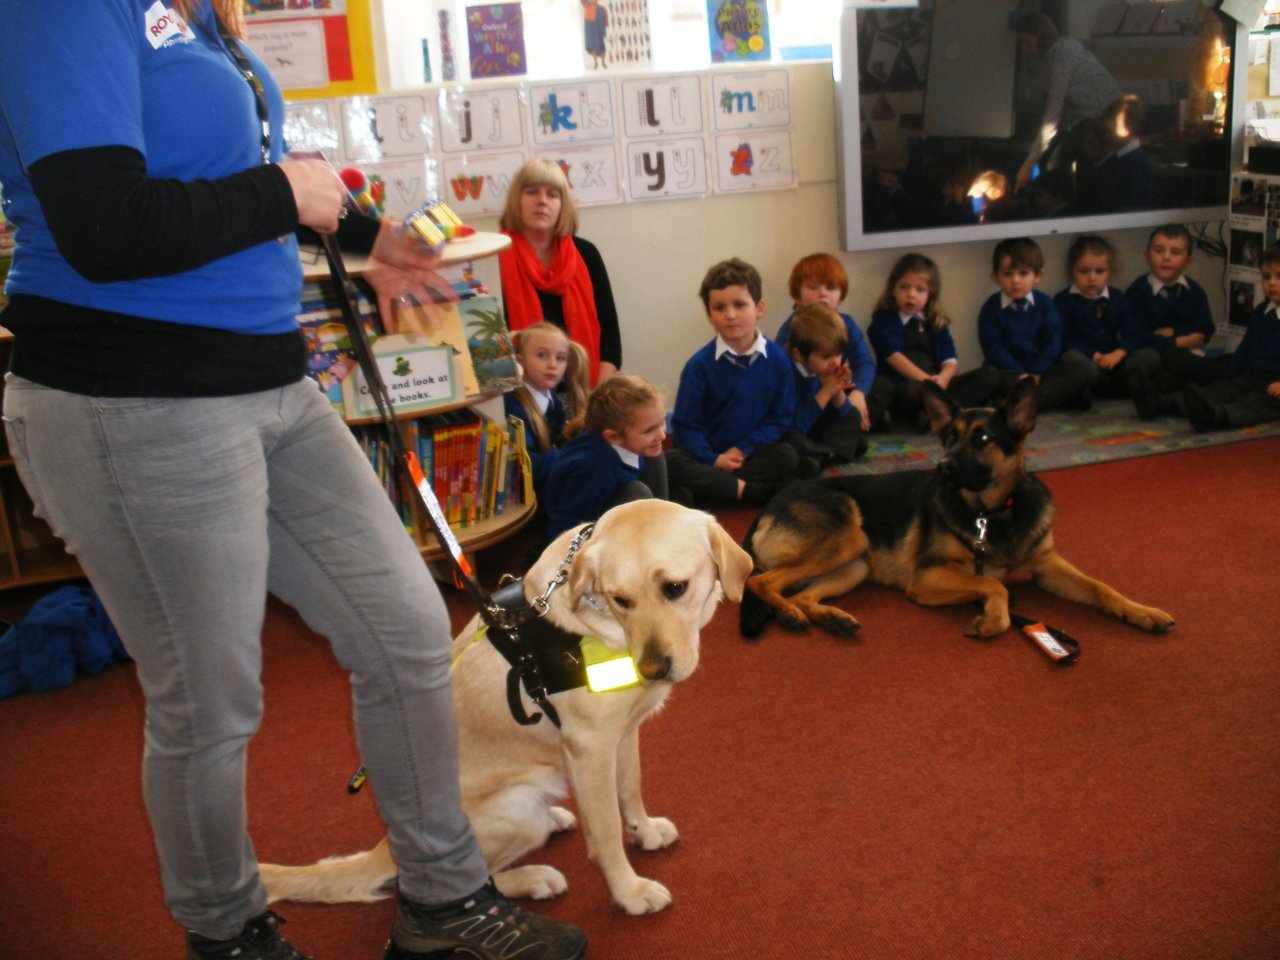 Attacks on guide dogs hit new high, says charity - BBC News